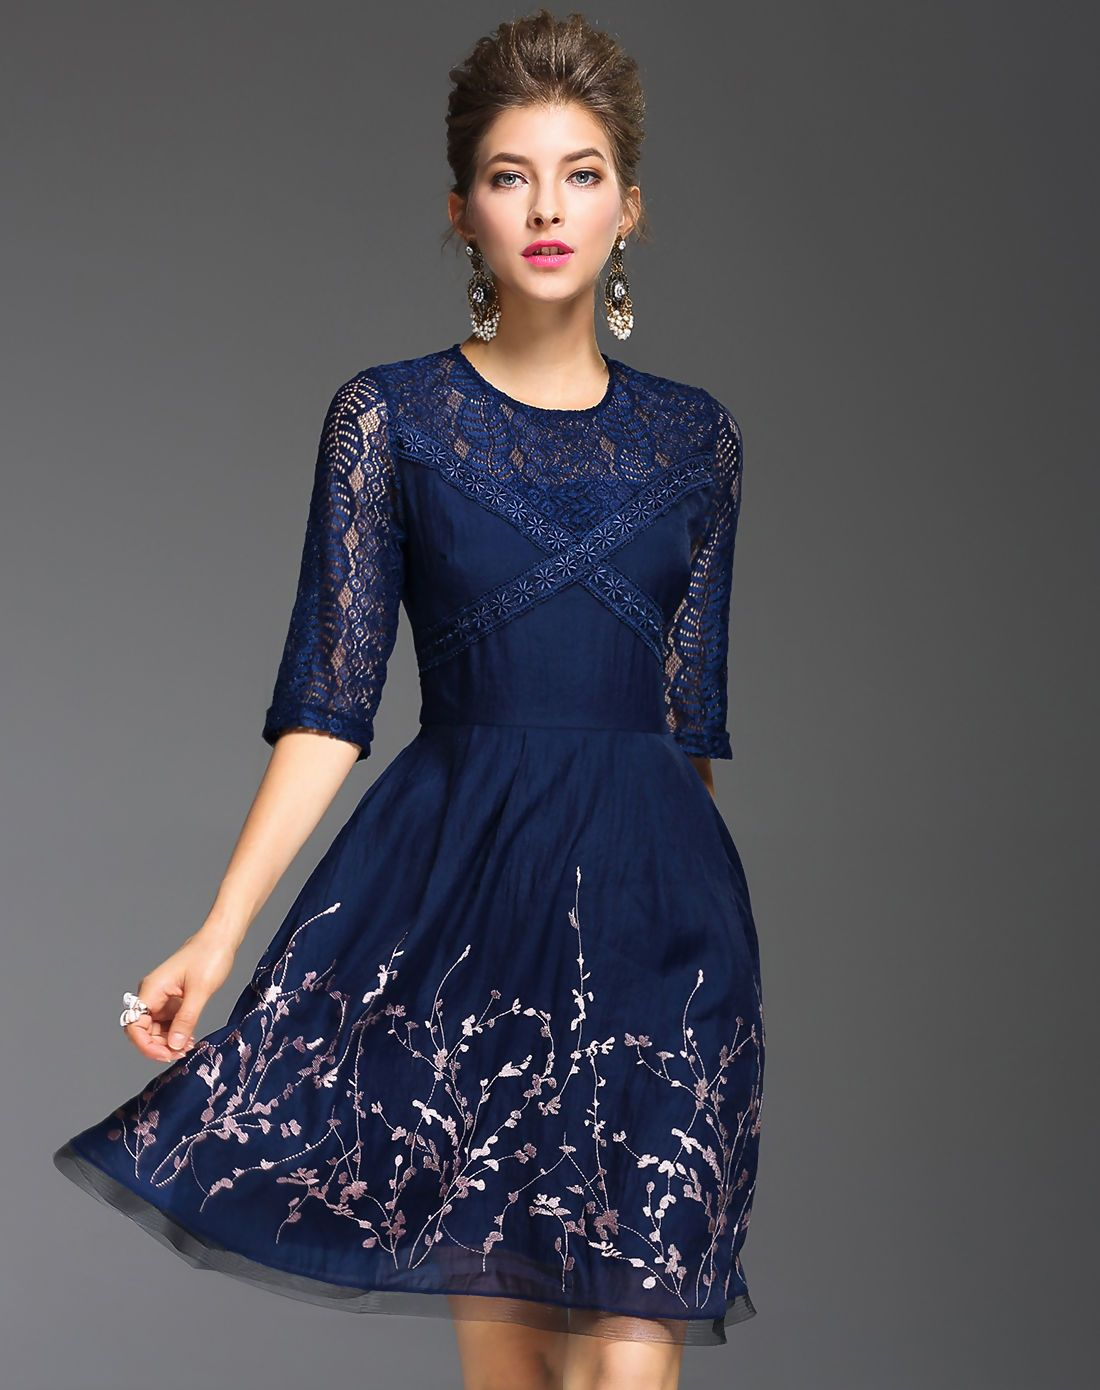 Blue floral embroidery lace paneled aline dress i found this